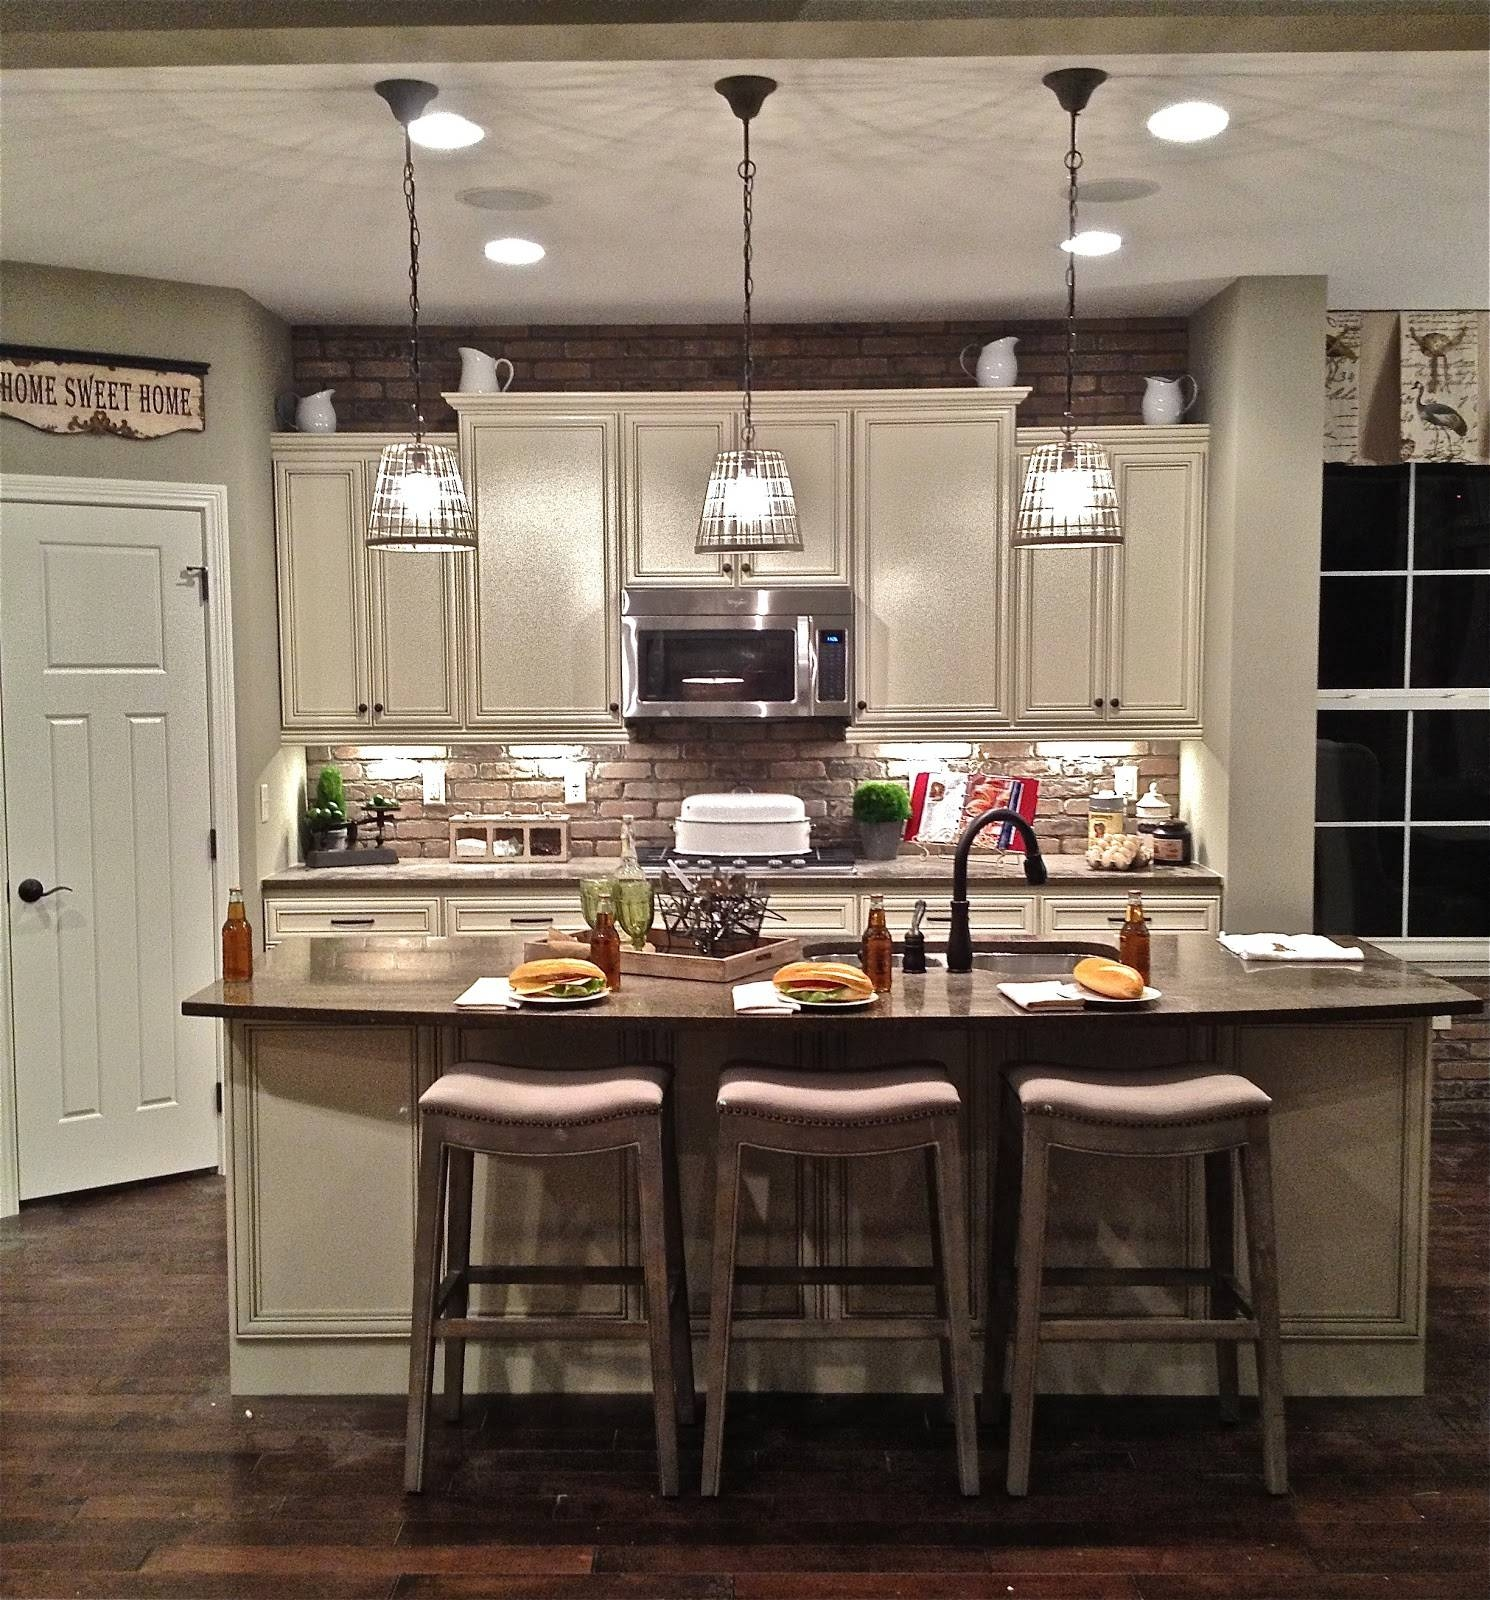 Trend Pendant Lighting Kitchen Island 88 For Your Clearance Regarding Clearance Pendant Lighting (View 15 of 15)